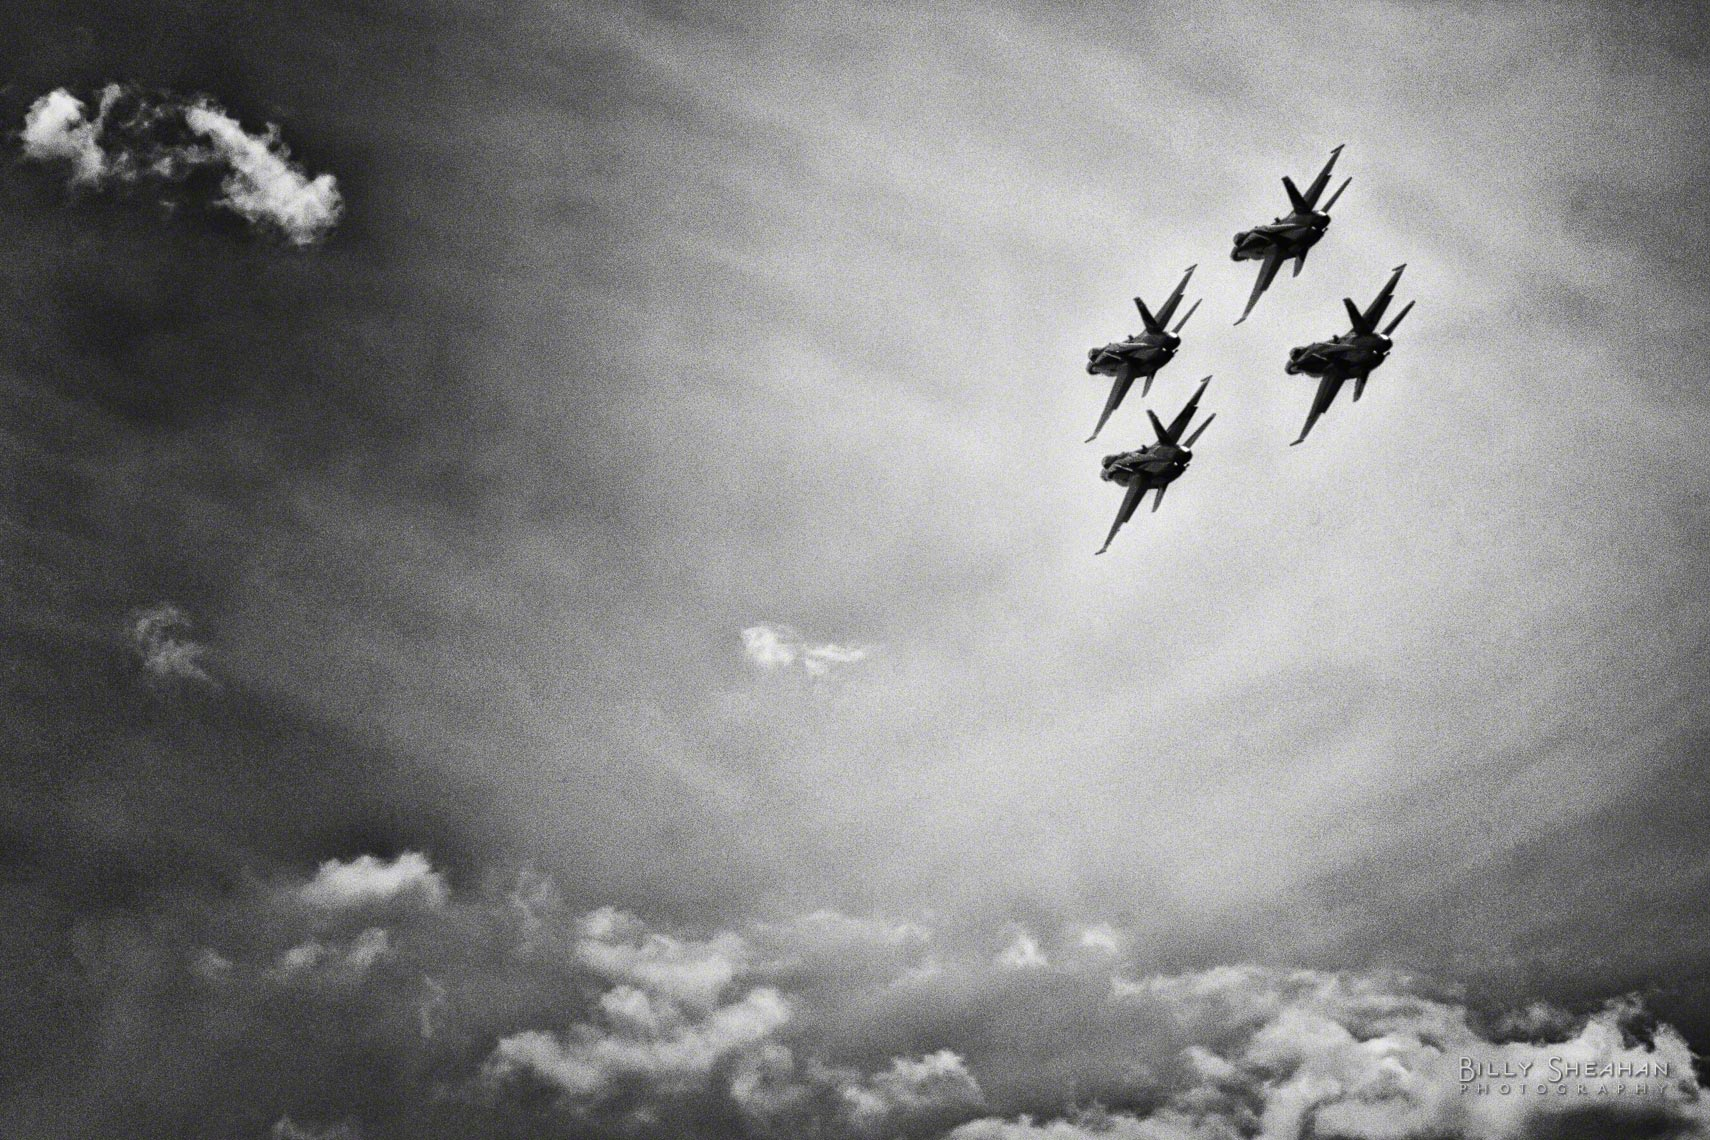 Blue_Angels_Quad_Formation_Chicago_AirShow_18Aug2012_0184_CL_BW_D.jpg